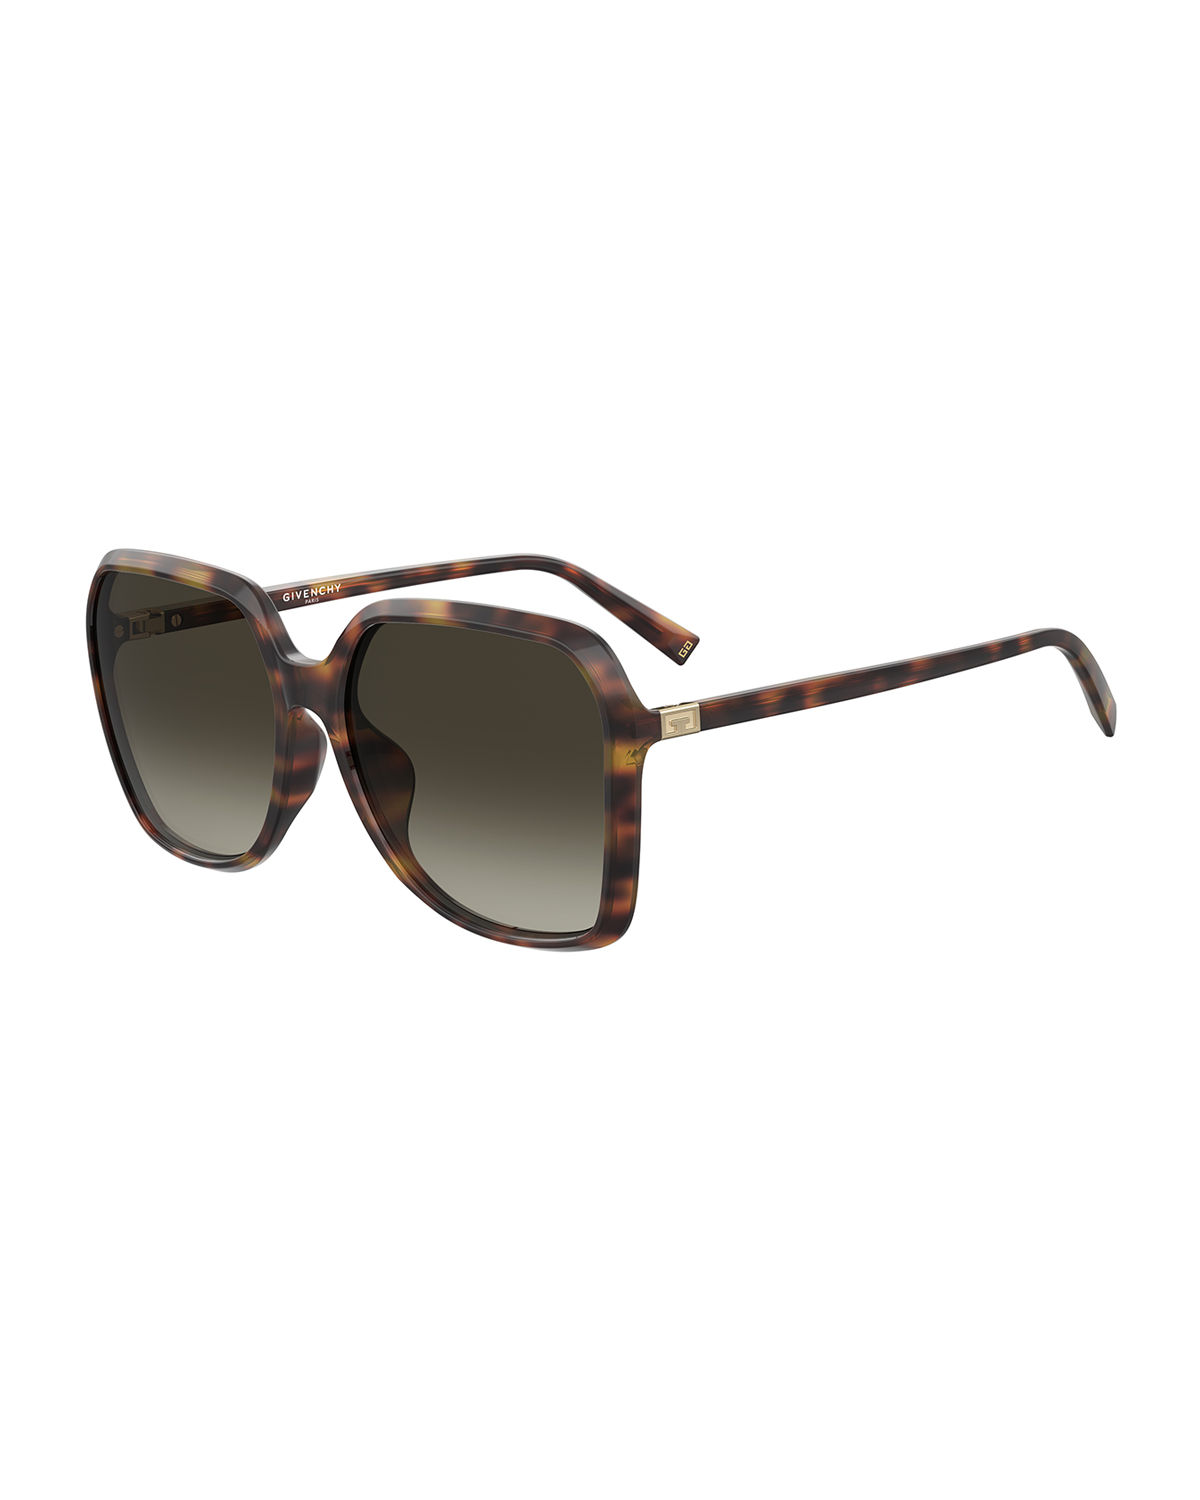 Givenchy OVERSIZED SQUARE PROPIONATE SUNGLASSES